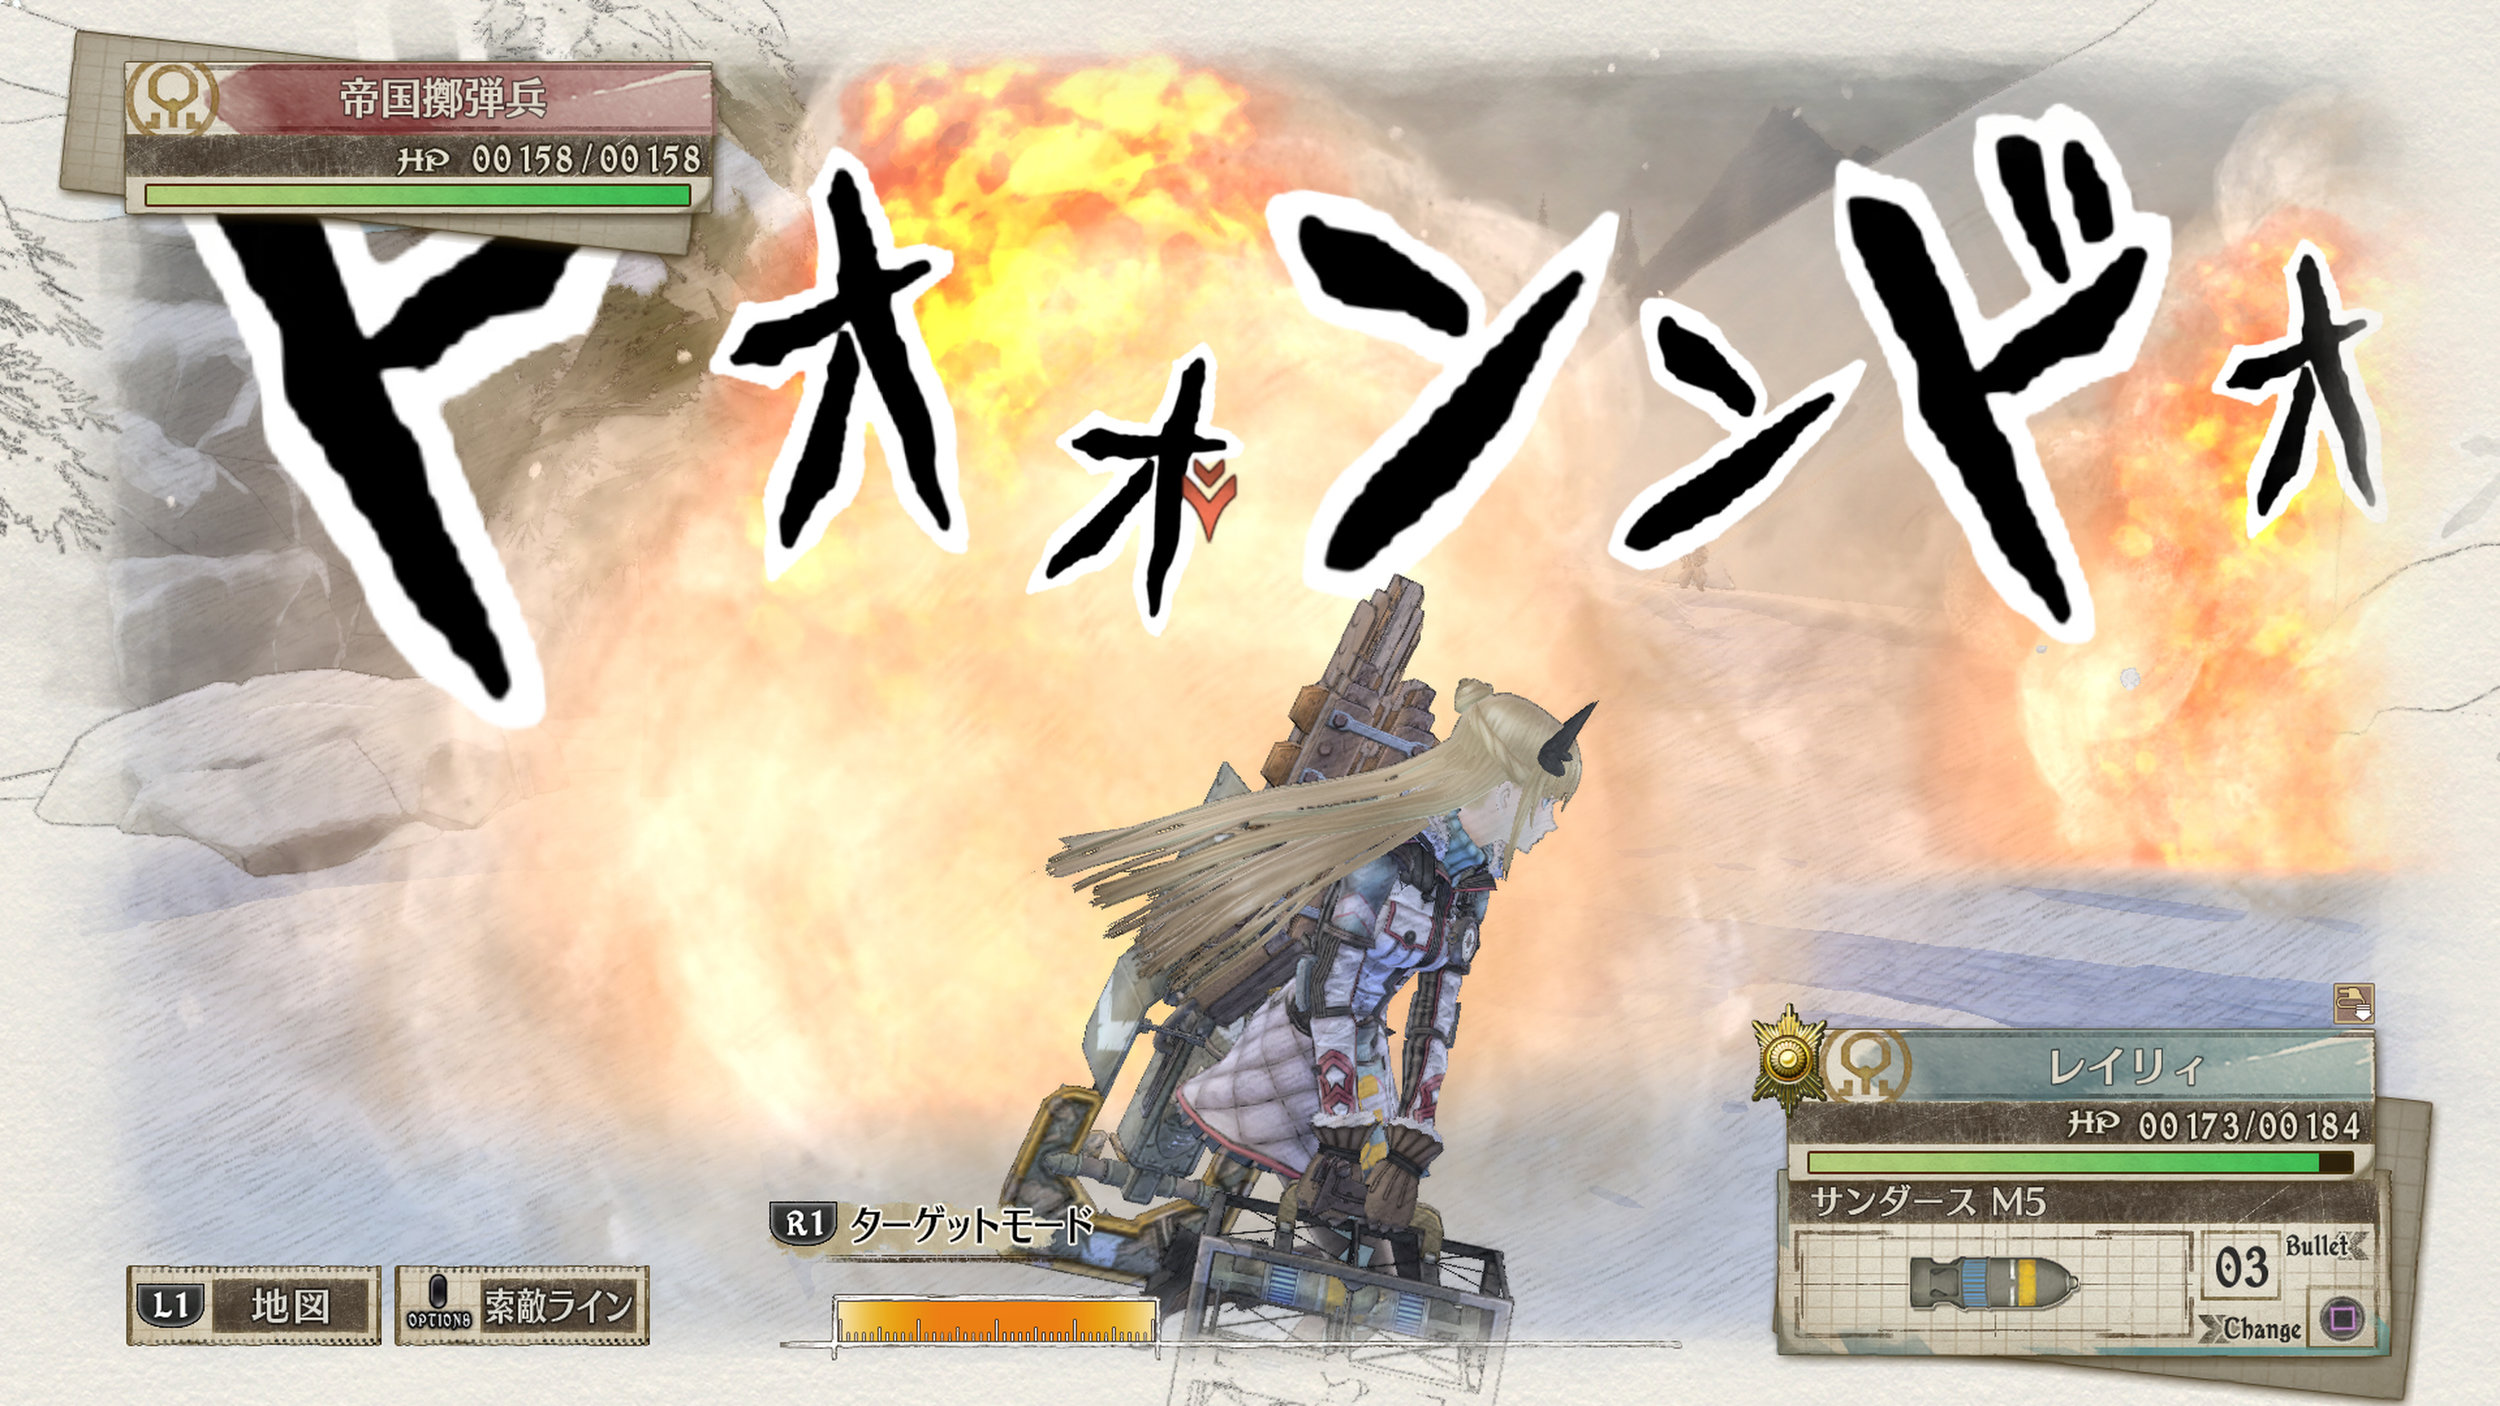 Valkyria-Chronicles-4_2017_11-19-17_003.jpg